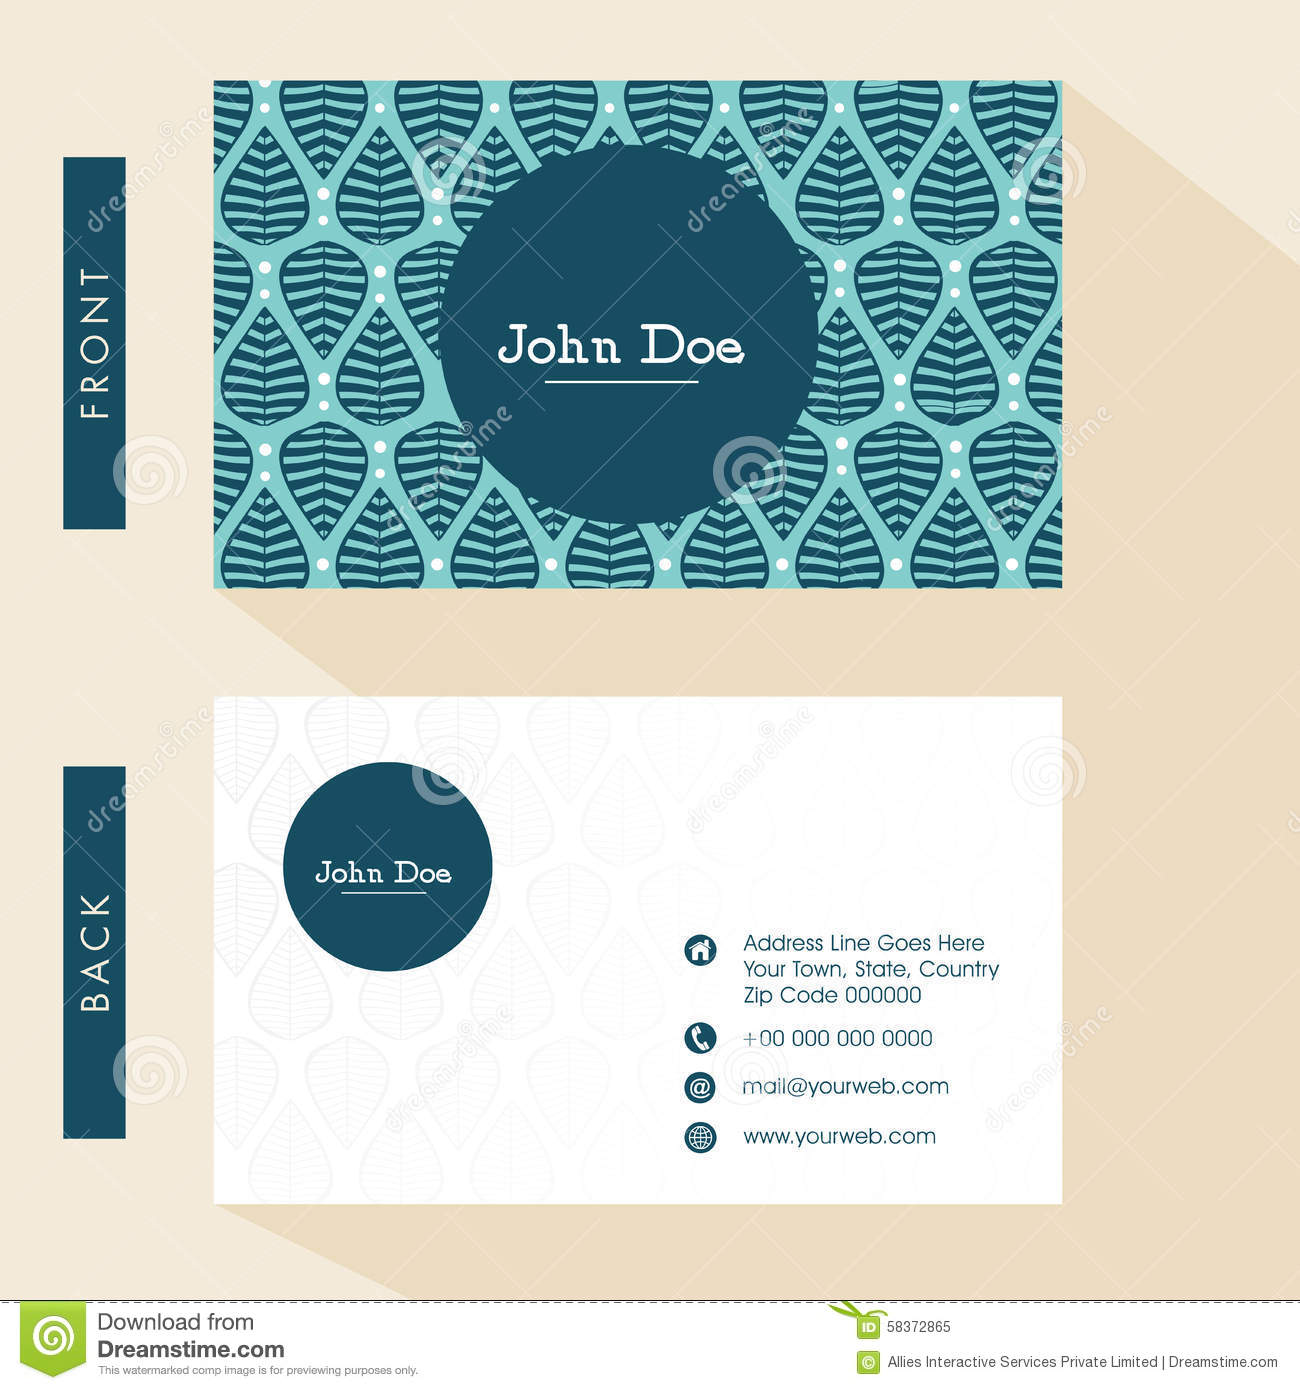 Floral Business Card Design. Stock Illustration - Illustration of ...